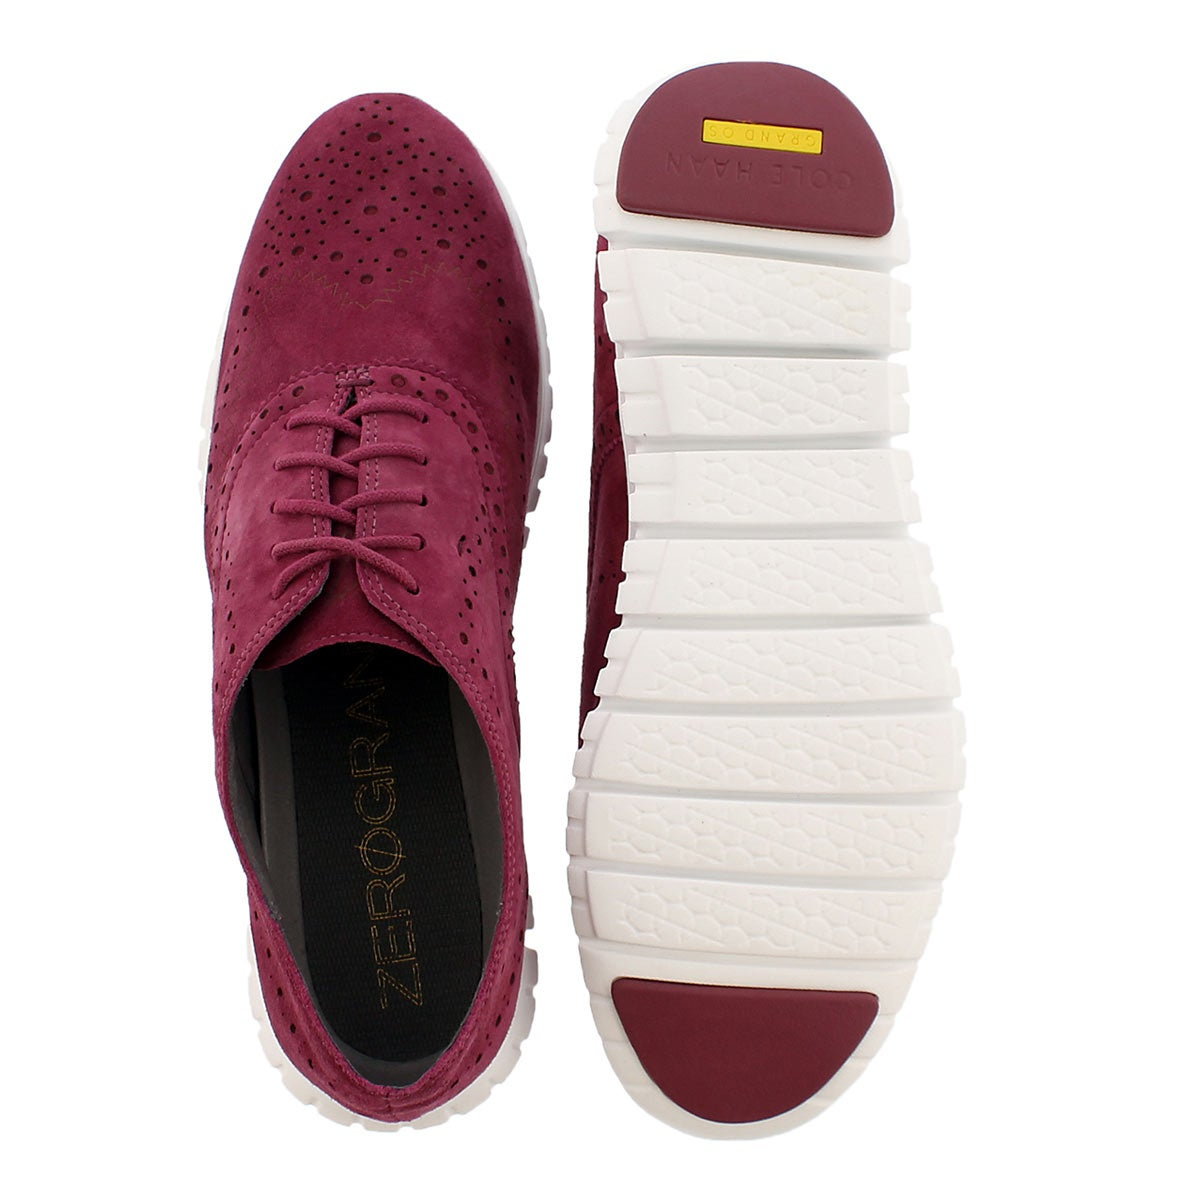 Lds Zerogrand Wing cabernet oxford